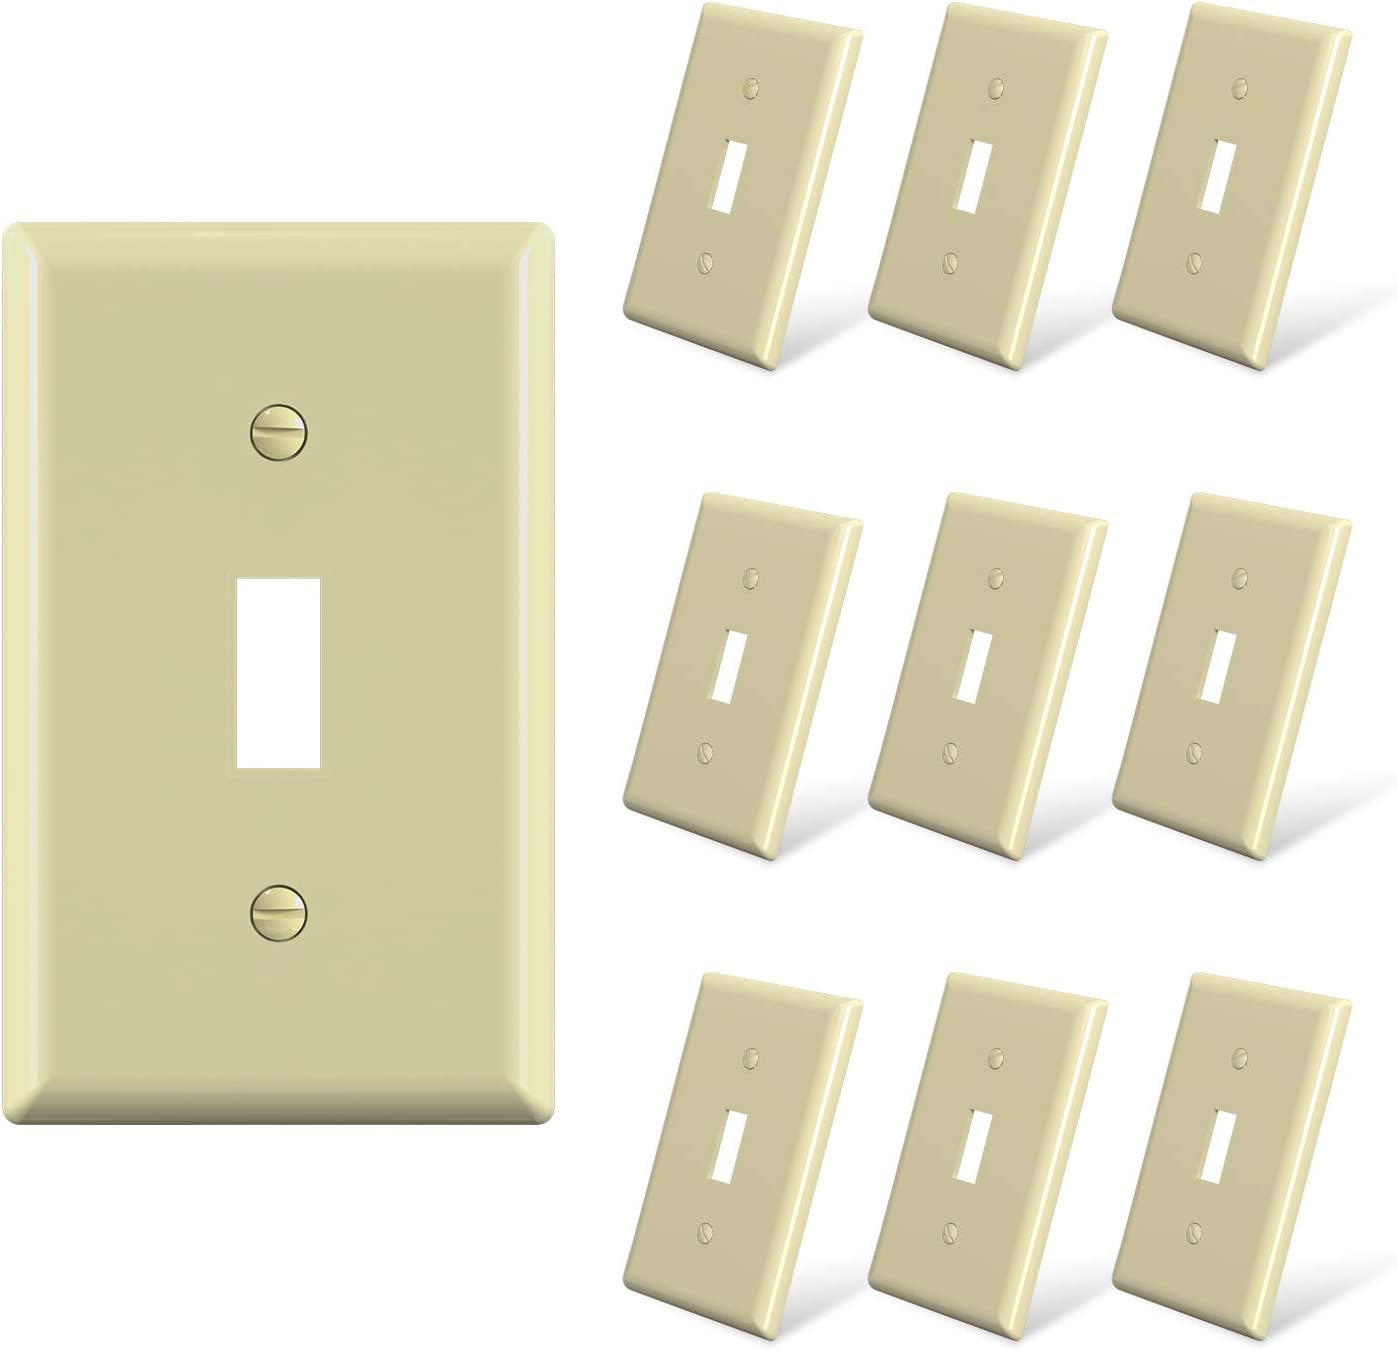 Elegrp Toggle Light Switch Wall Plate 1 Gang Standard Size Switch Covers Unbreakable Polycarbonate Replacement Faceplates Covers Ul Listed Color Matched Screws Included 10 Pack Glossy Ivory Amazon Com